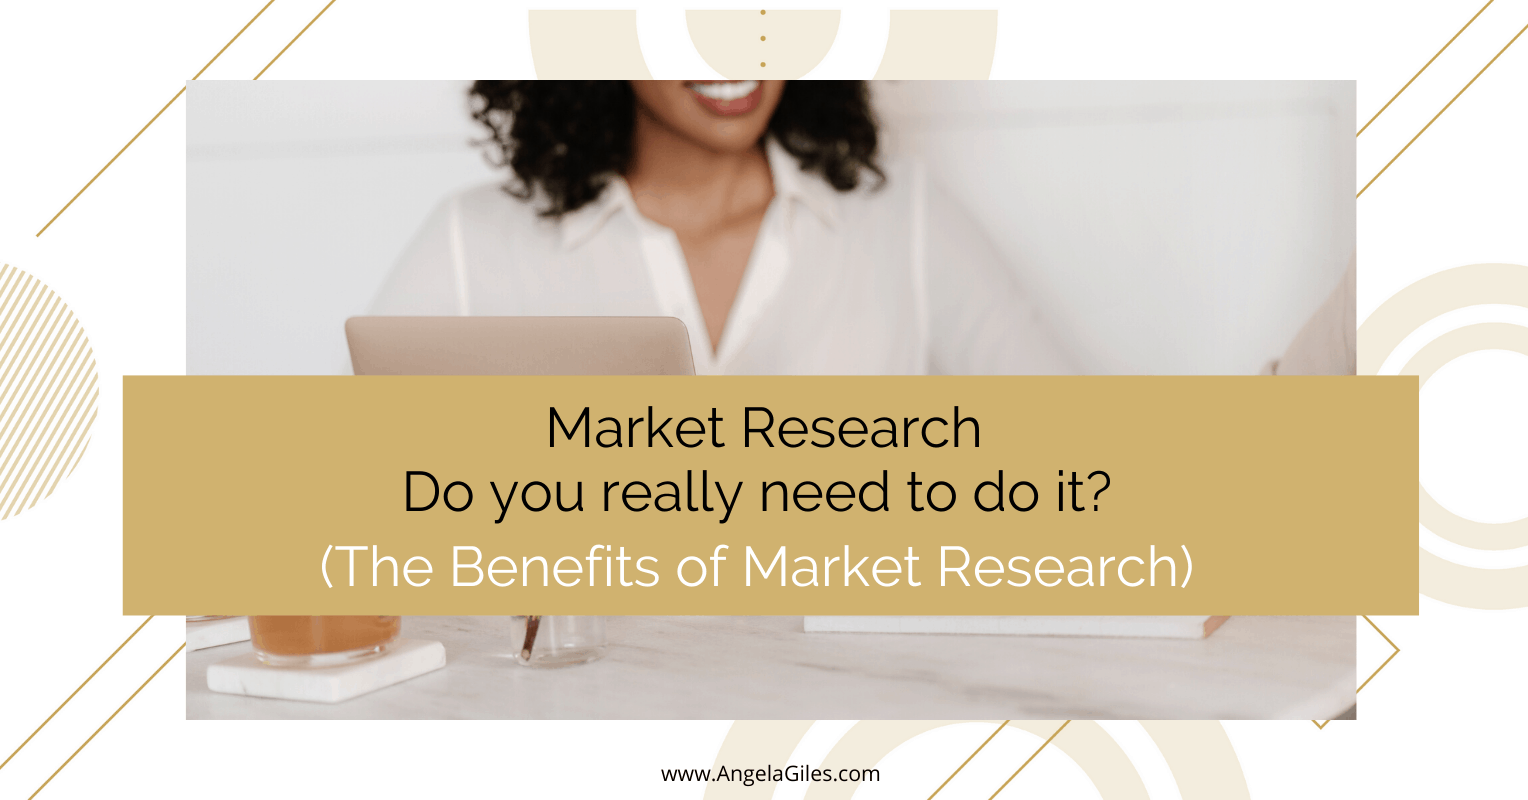 Market Research – Do you really need to do it? 7 Benefits of Market Research